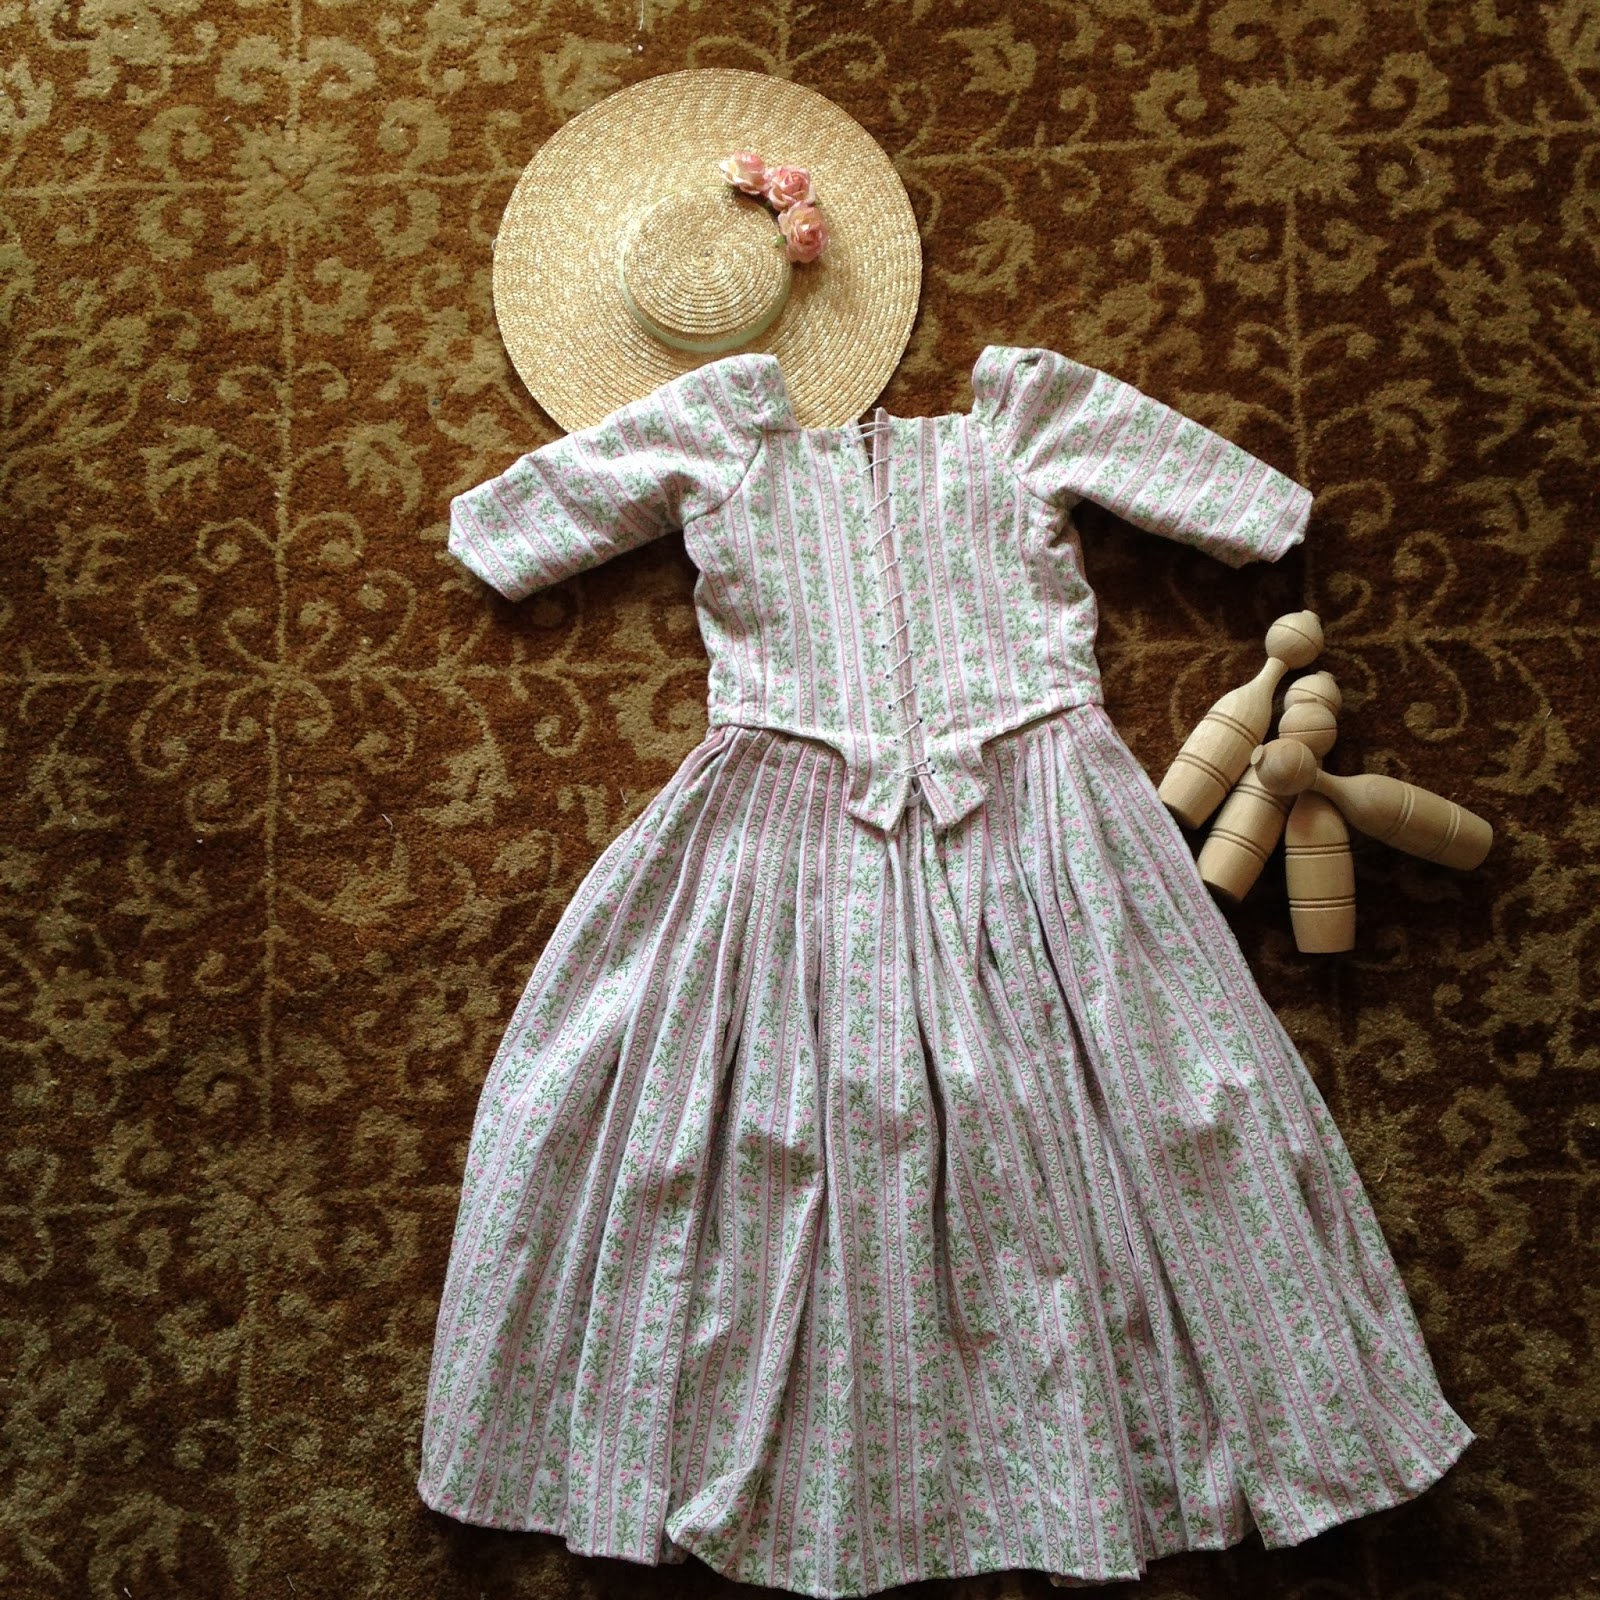 Sew 18th Century: A Little Gown for A Little Girl